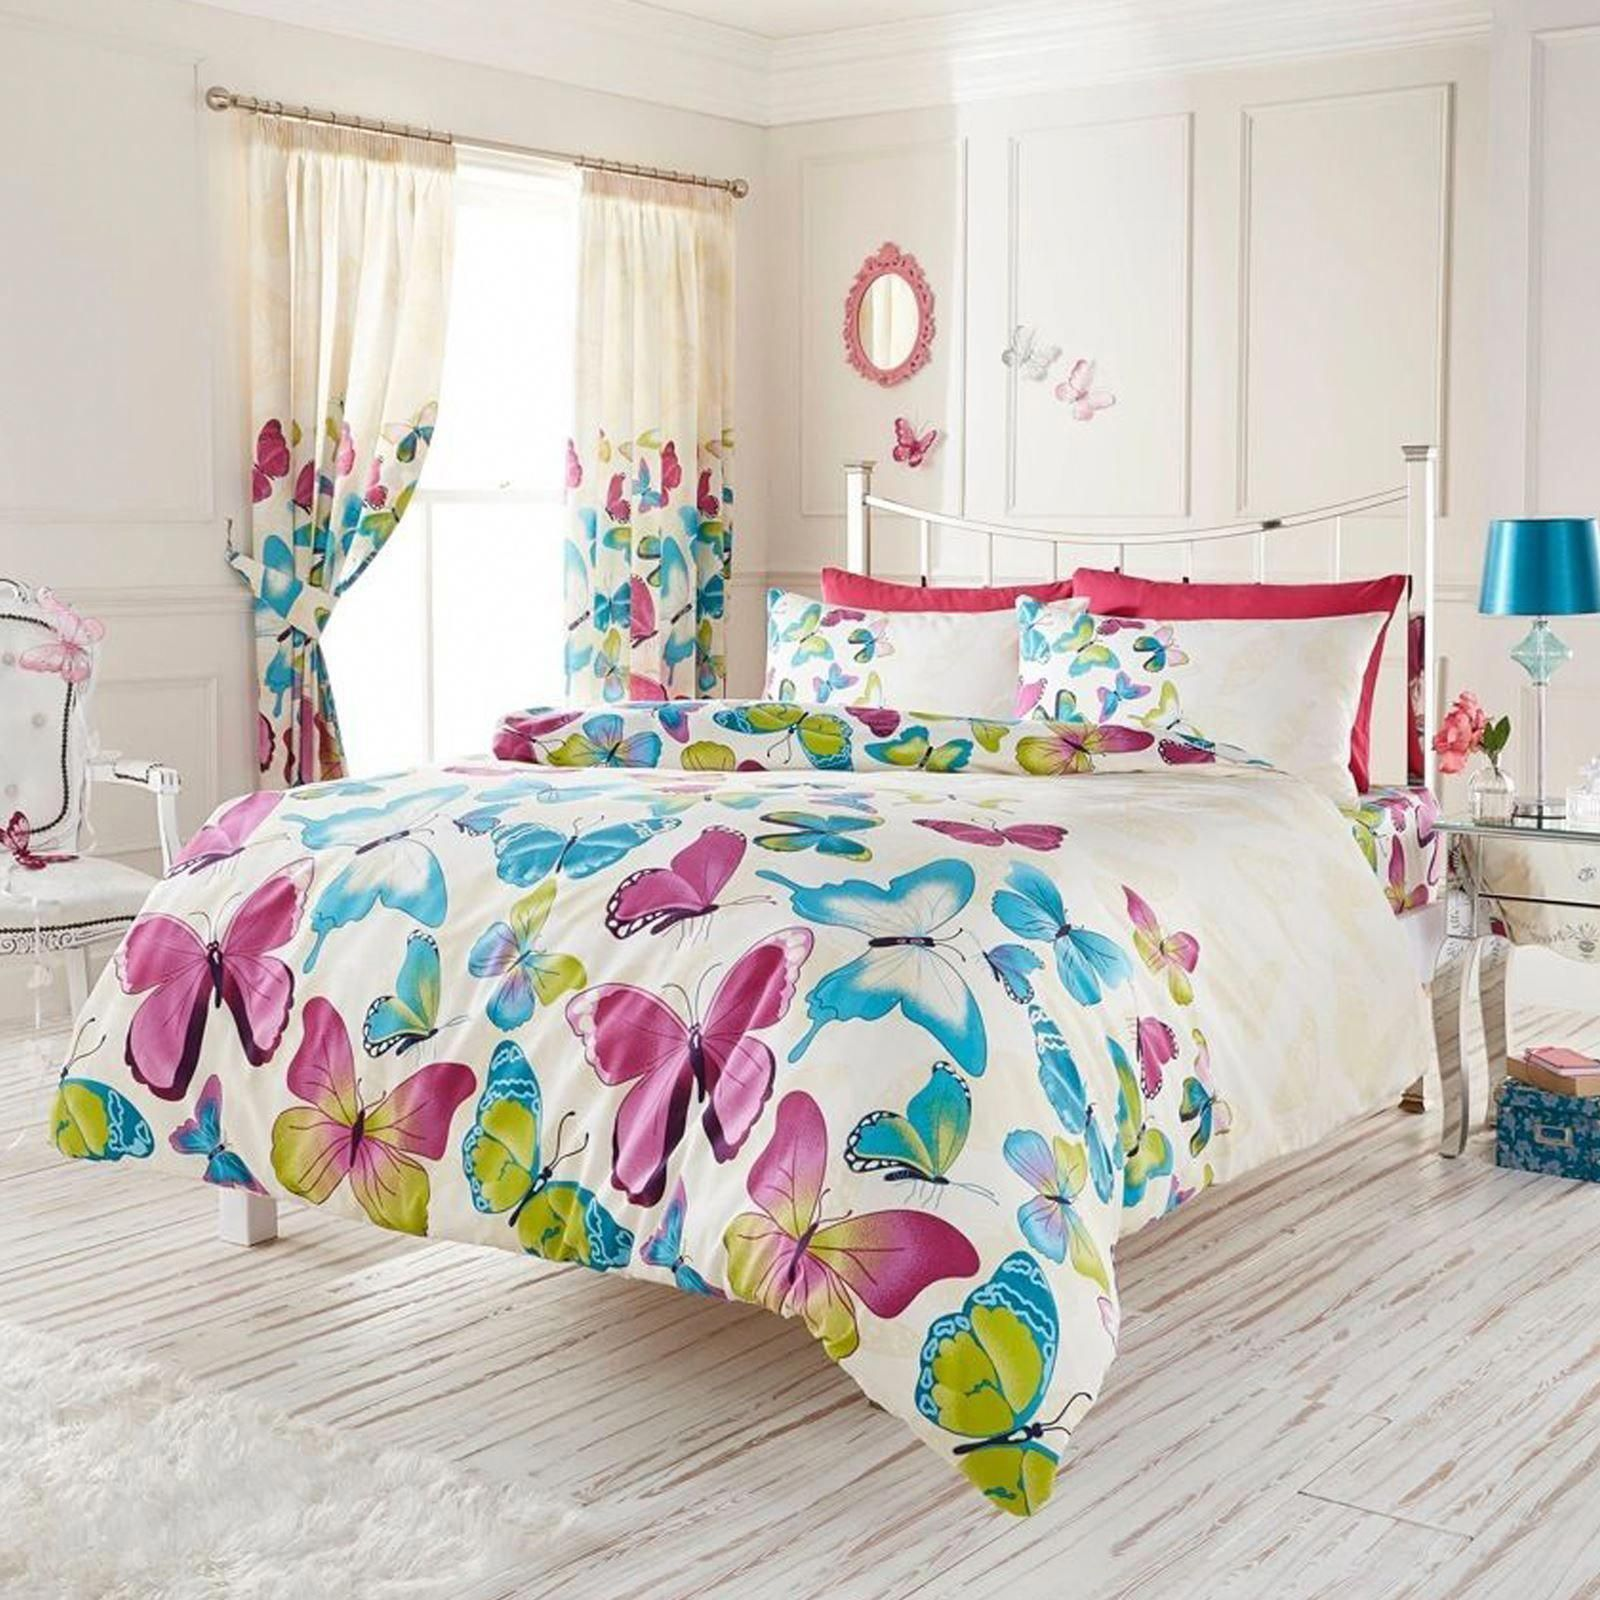 Fashion Butterfly King Size Duvet Cover And Pillowcase